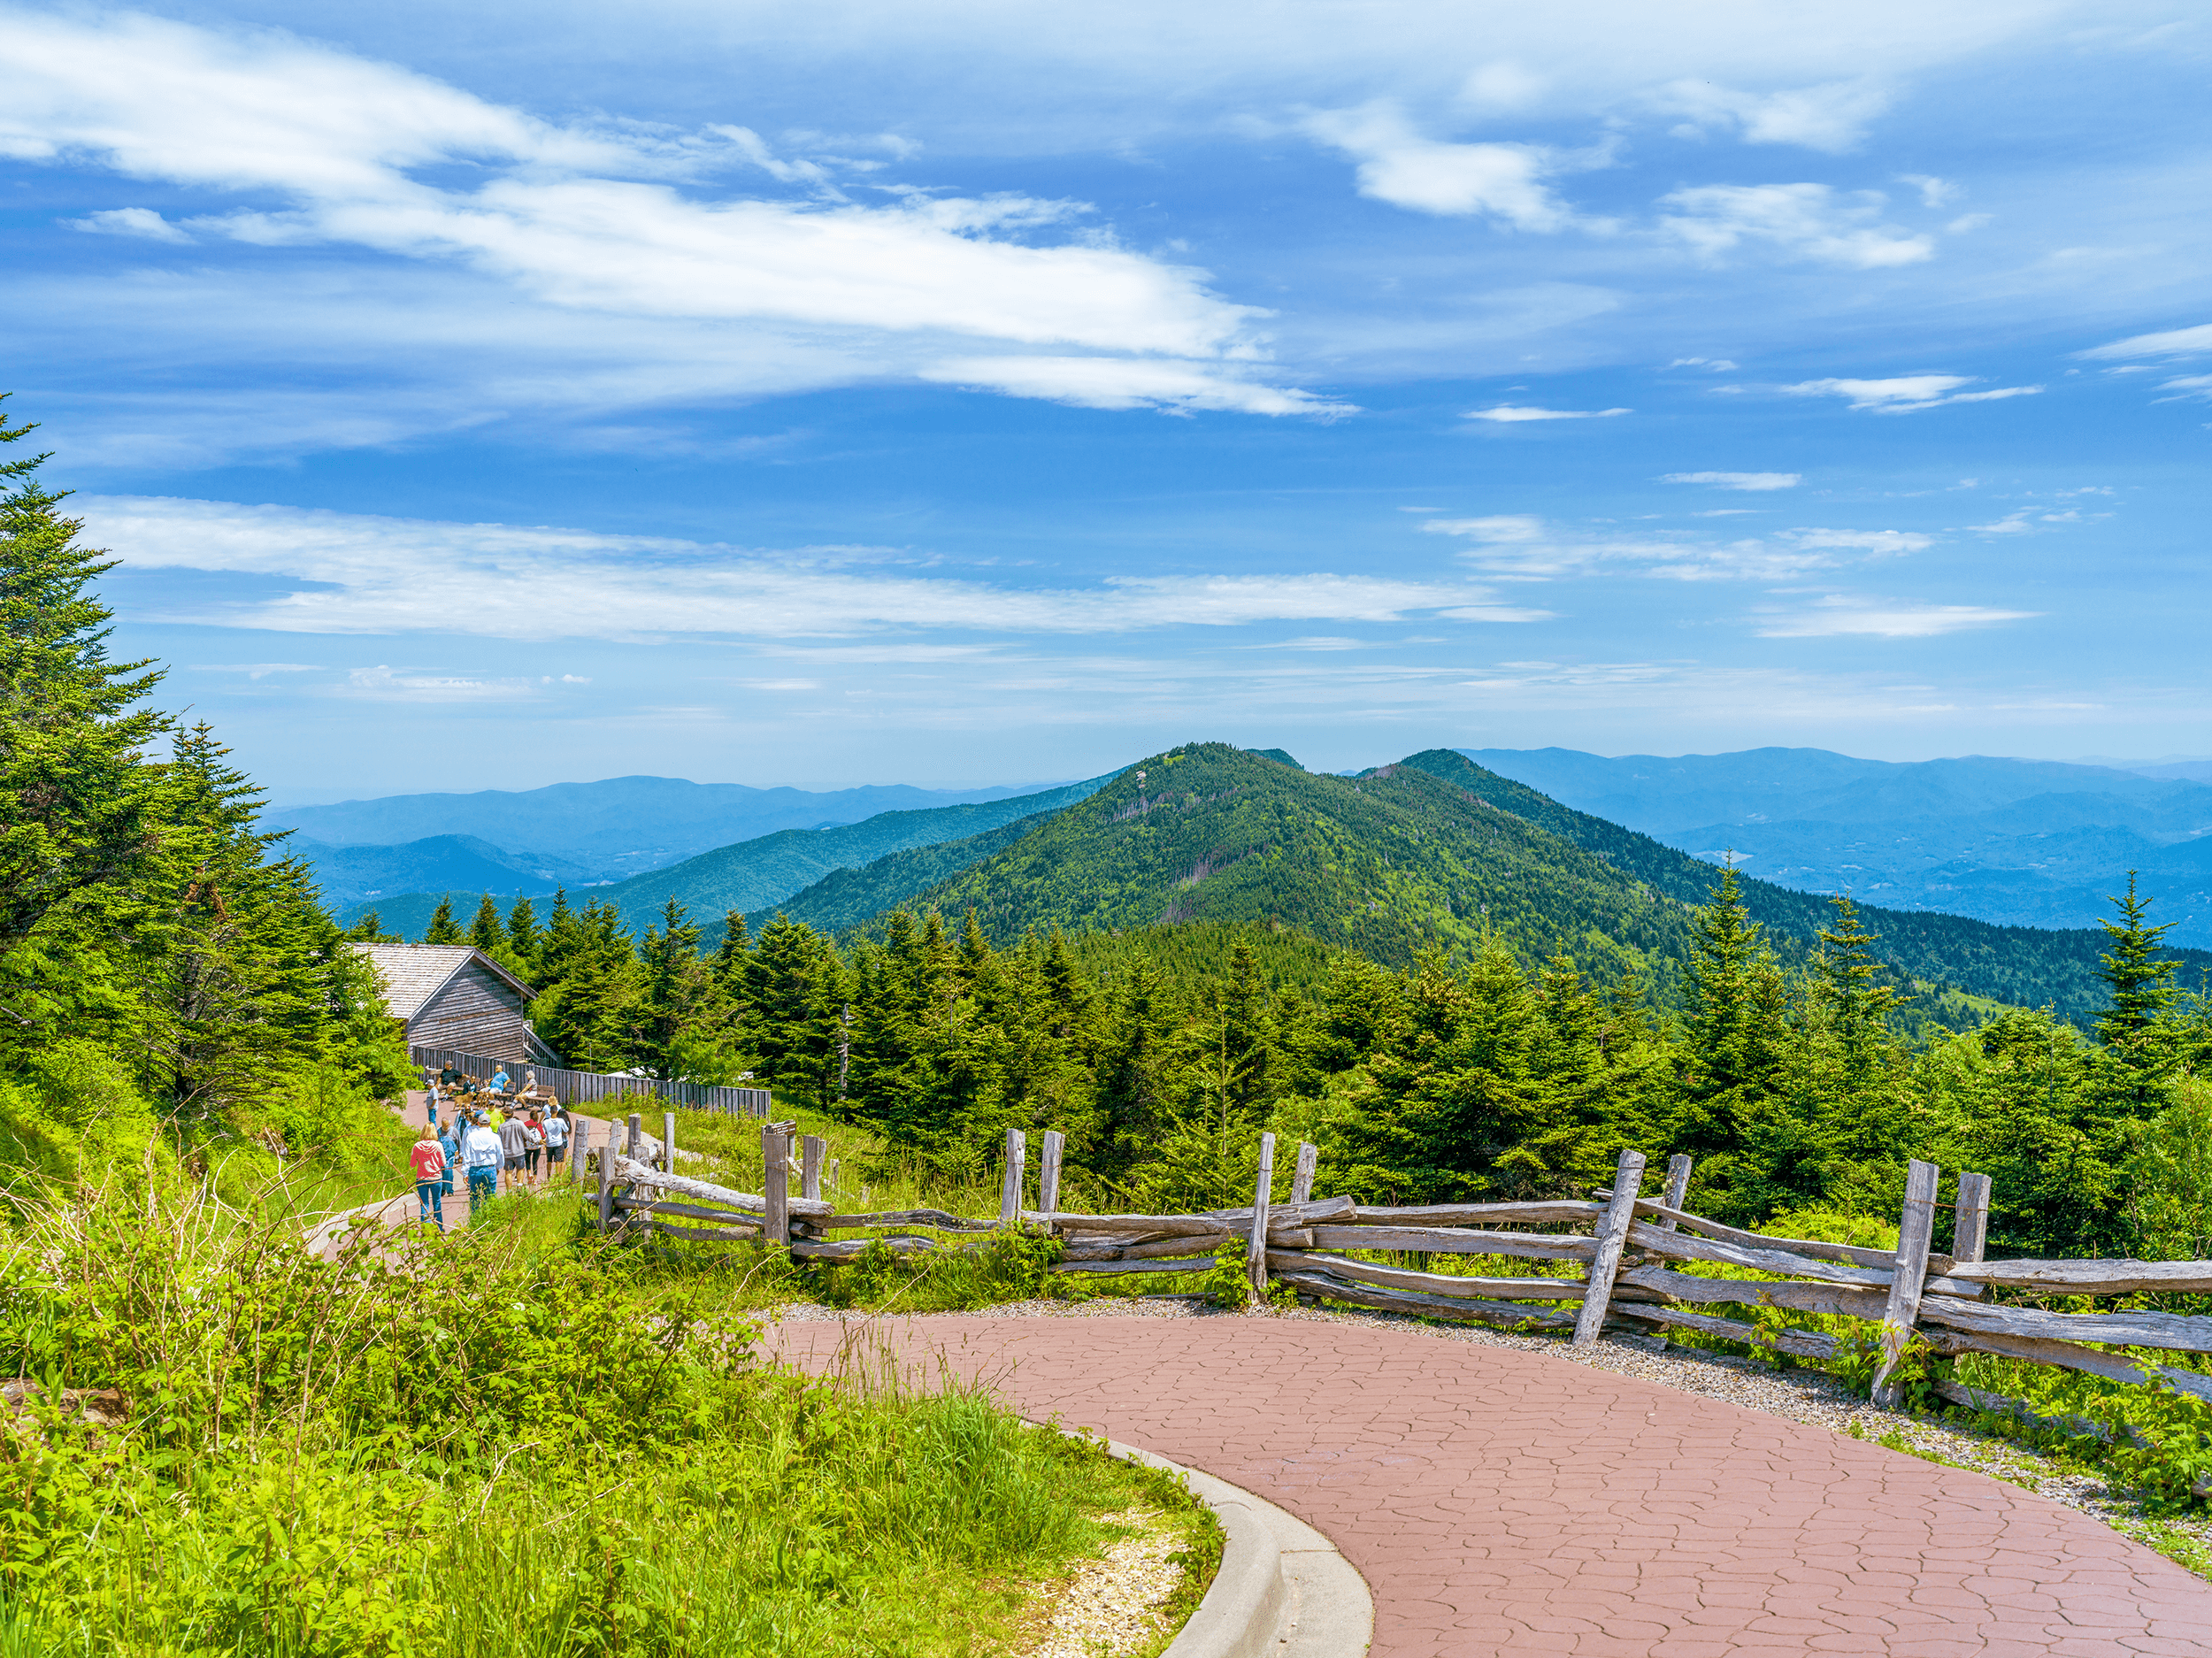 The trail from the parking lot to the observation tower at the summit is paved and easy to walk.